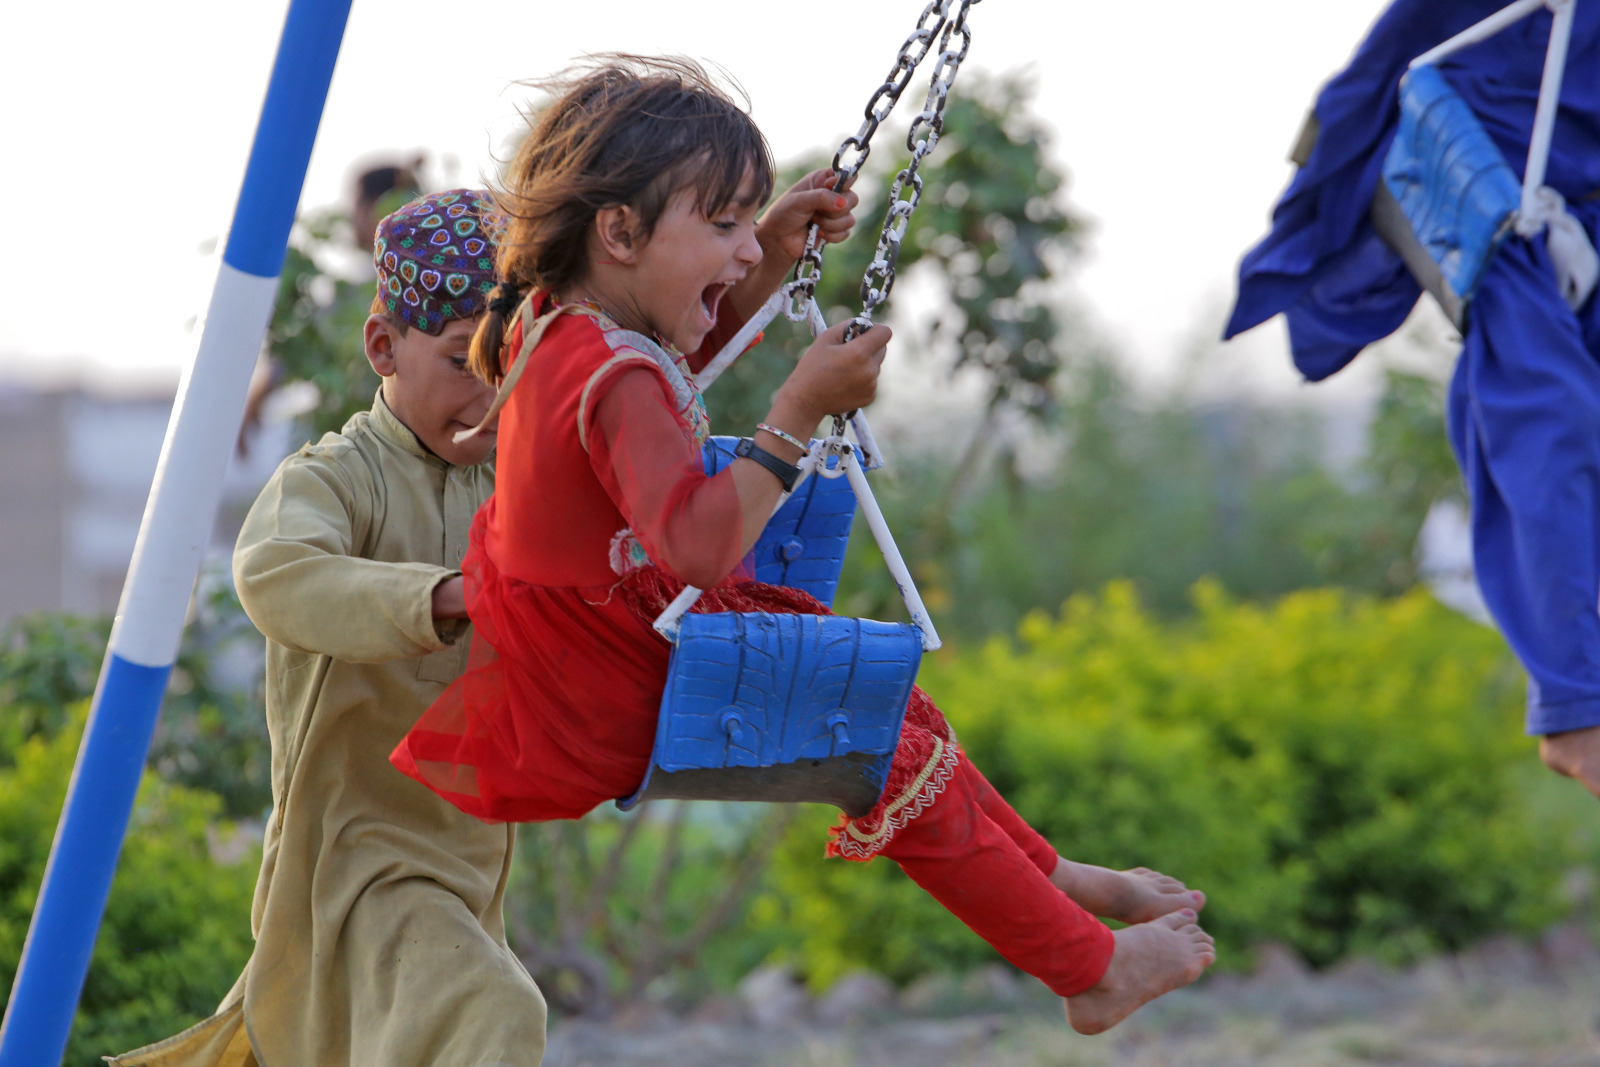 c_Dynimax-Intermedia_HI__A_little_girl_in_red_smiles_as_a_boy_pushes_her_on_swings.jpg